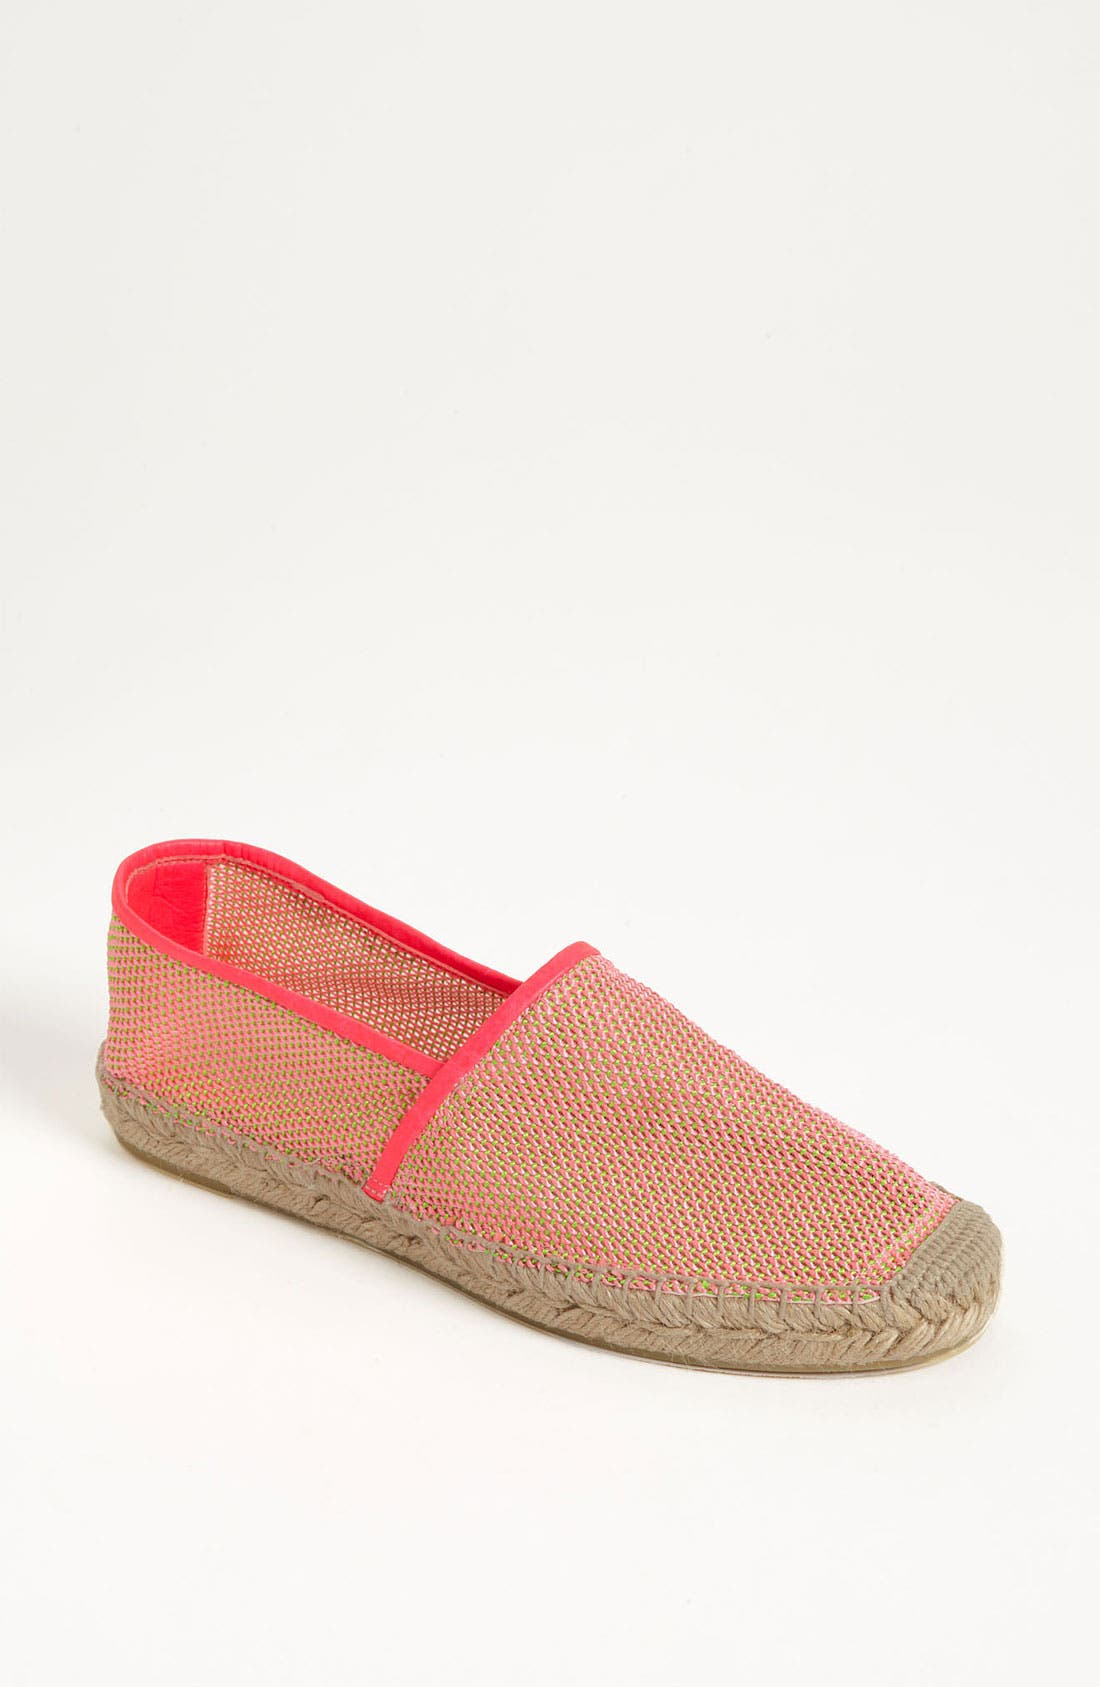 Alternate Image 1 Selected - Stella McCartney Espadrille Flat